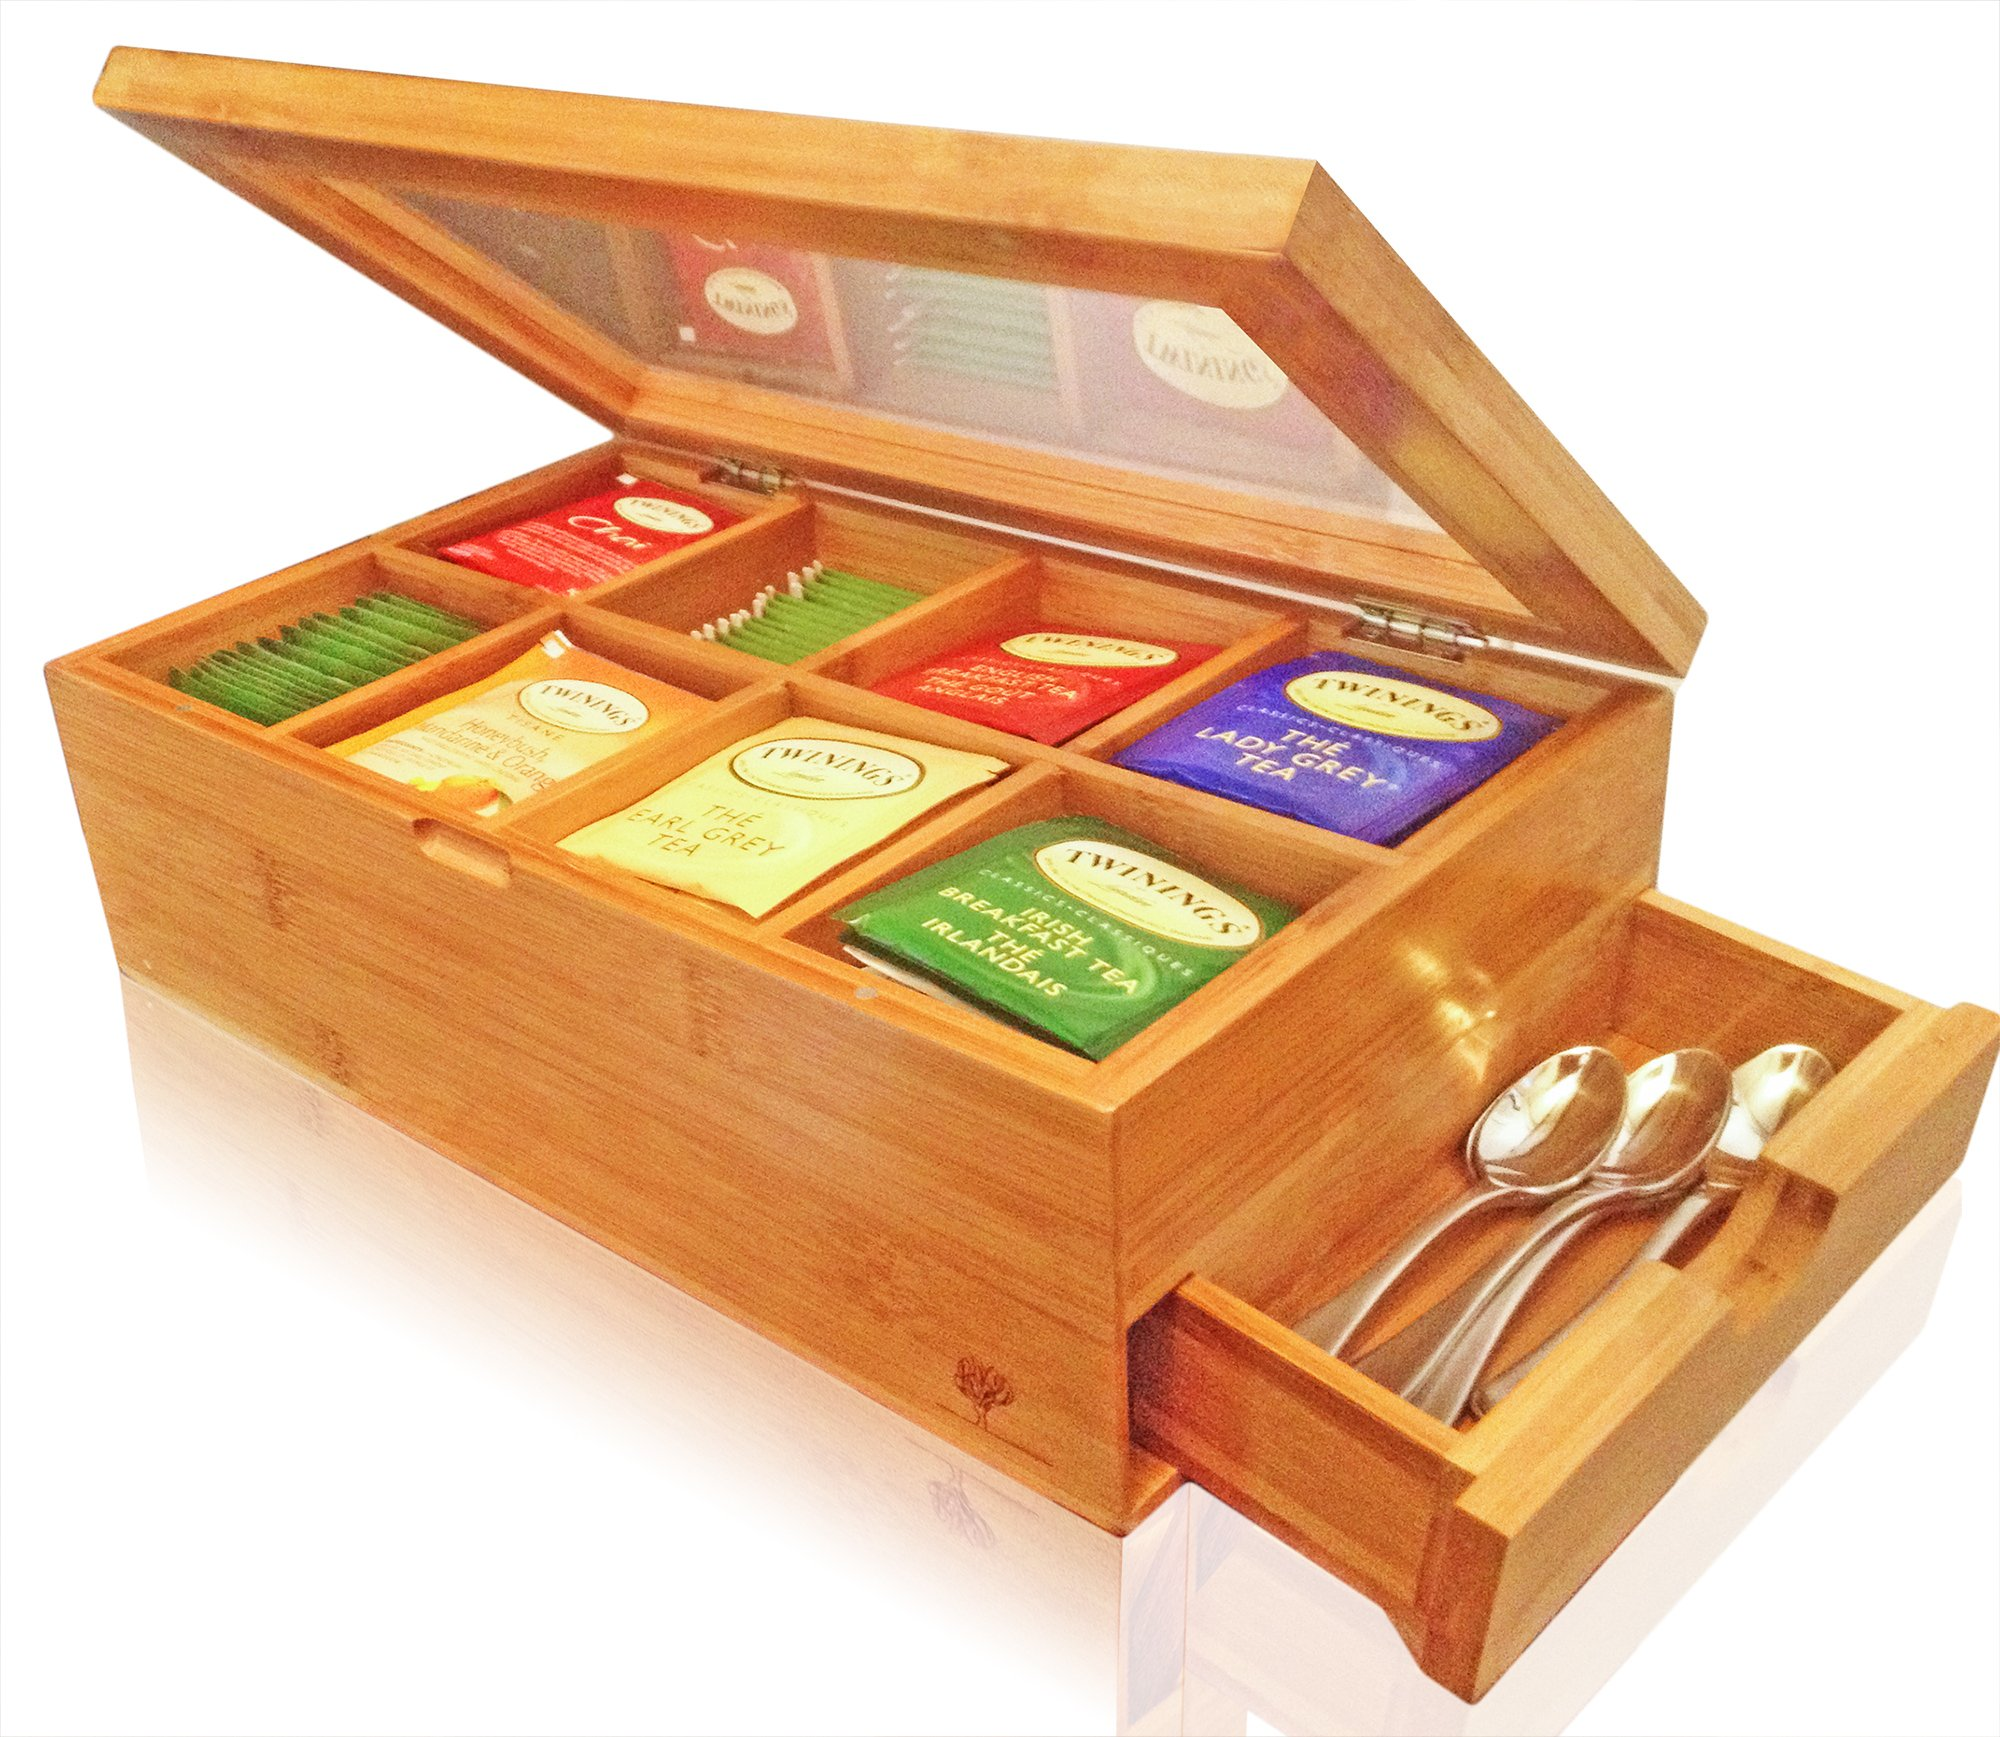 SOLID 100% BAMBOO Tea Box Natural Chest with Clear Hinged Lid, 8 Storage Sections with Expandable Drawer by Kwijns Kreations